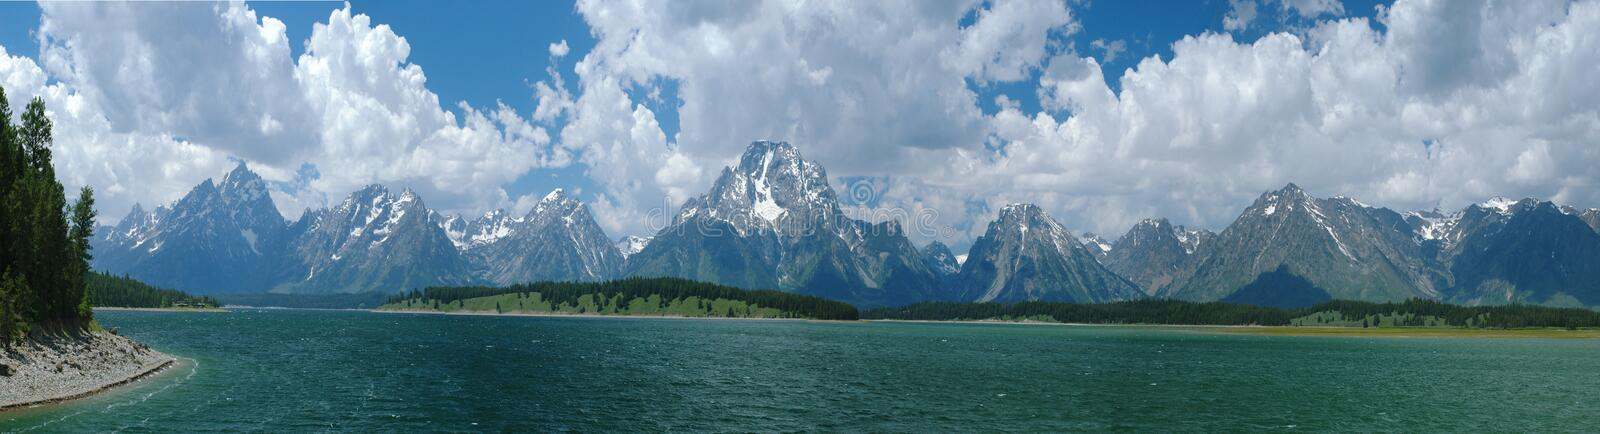 Grand Teton National Park stock photography